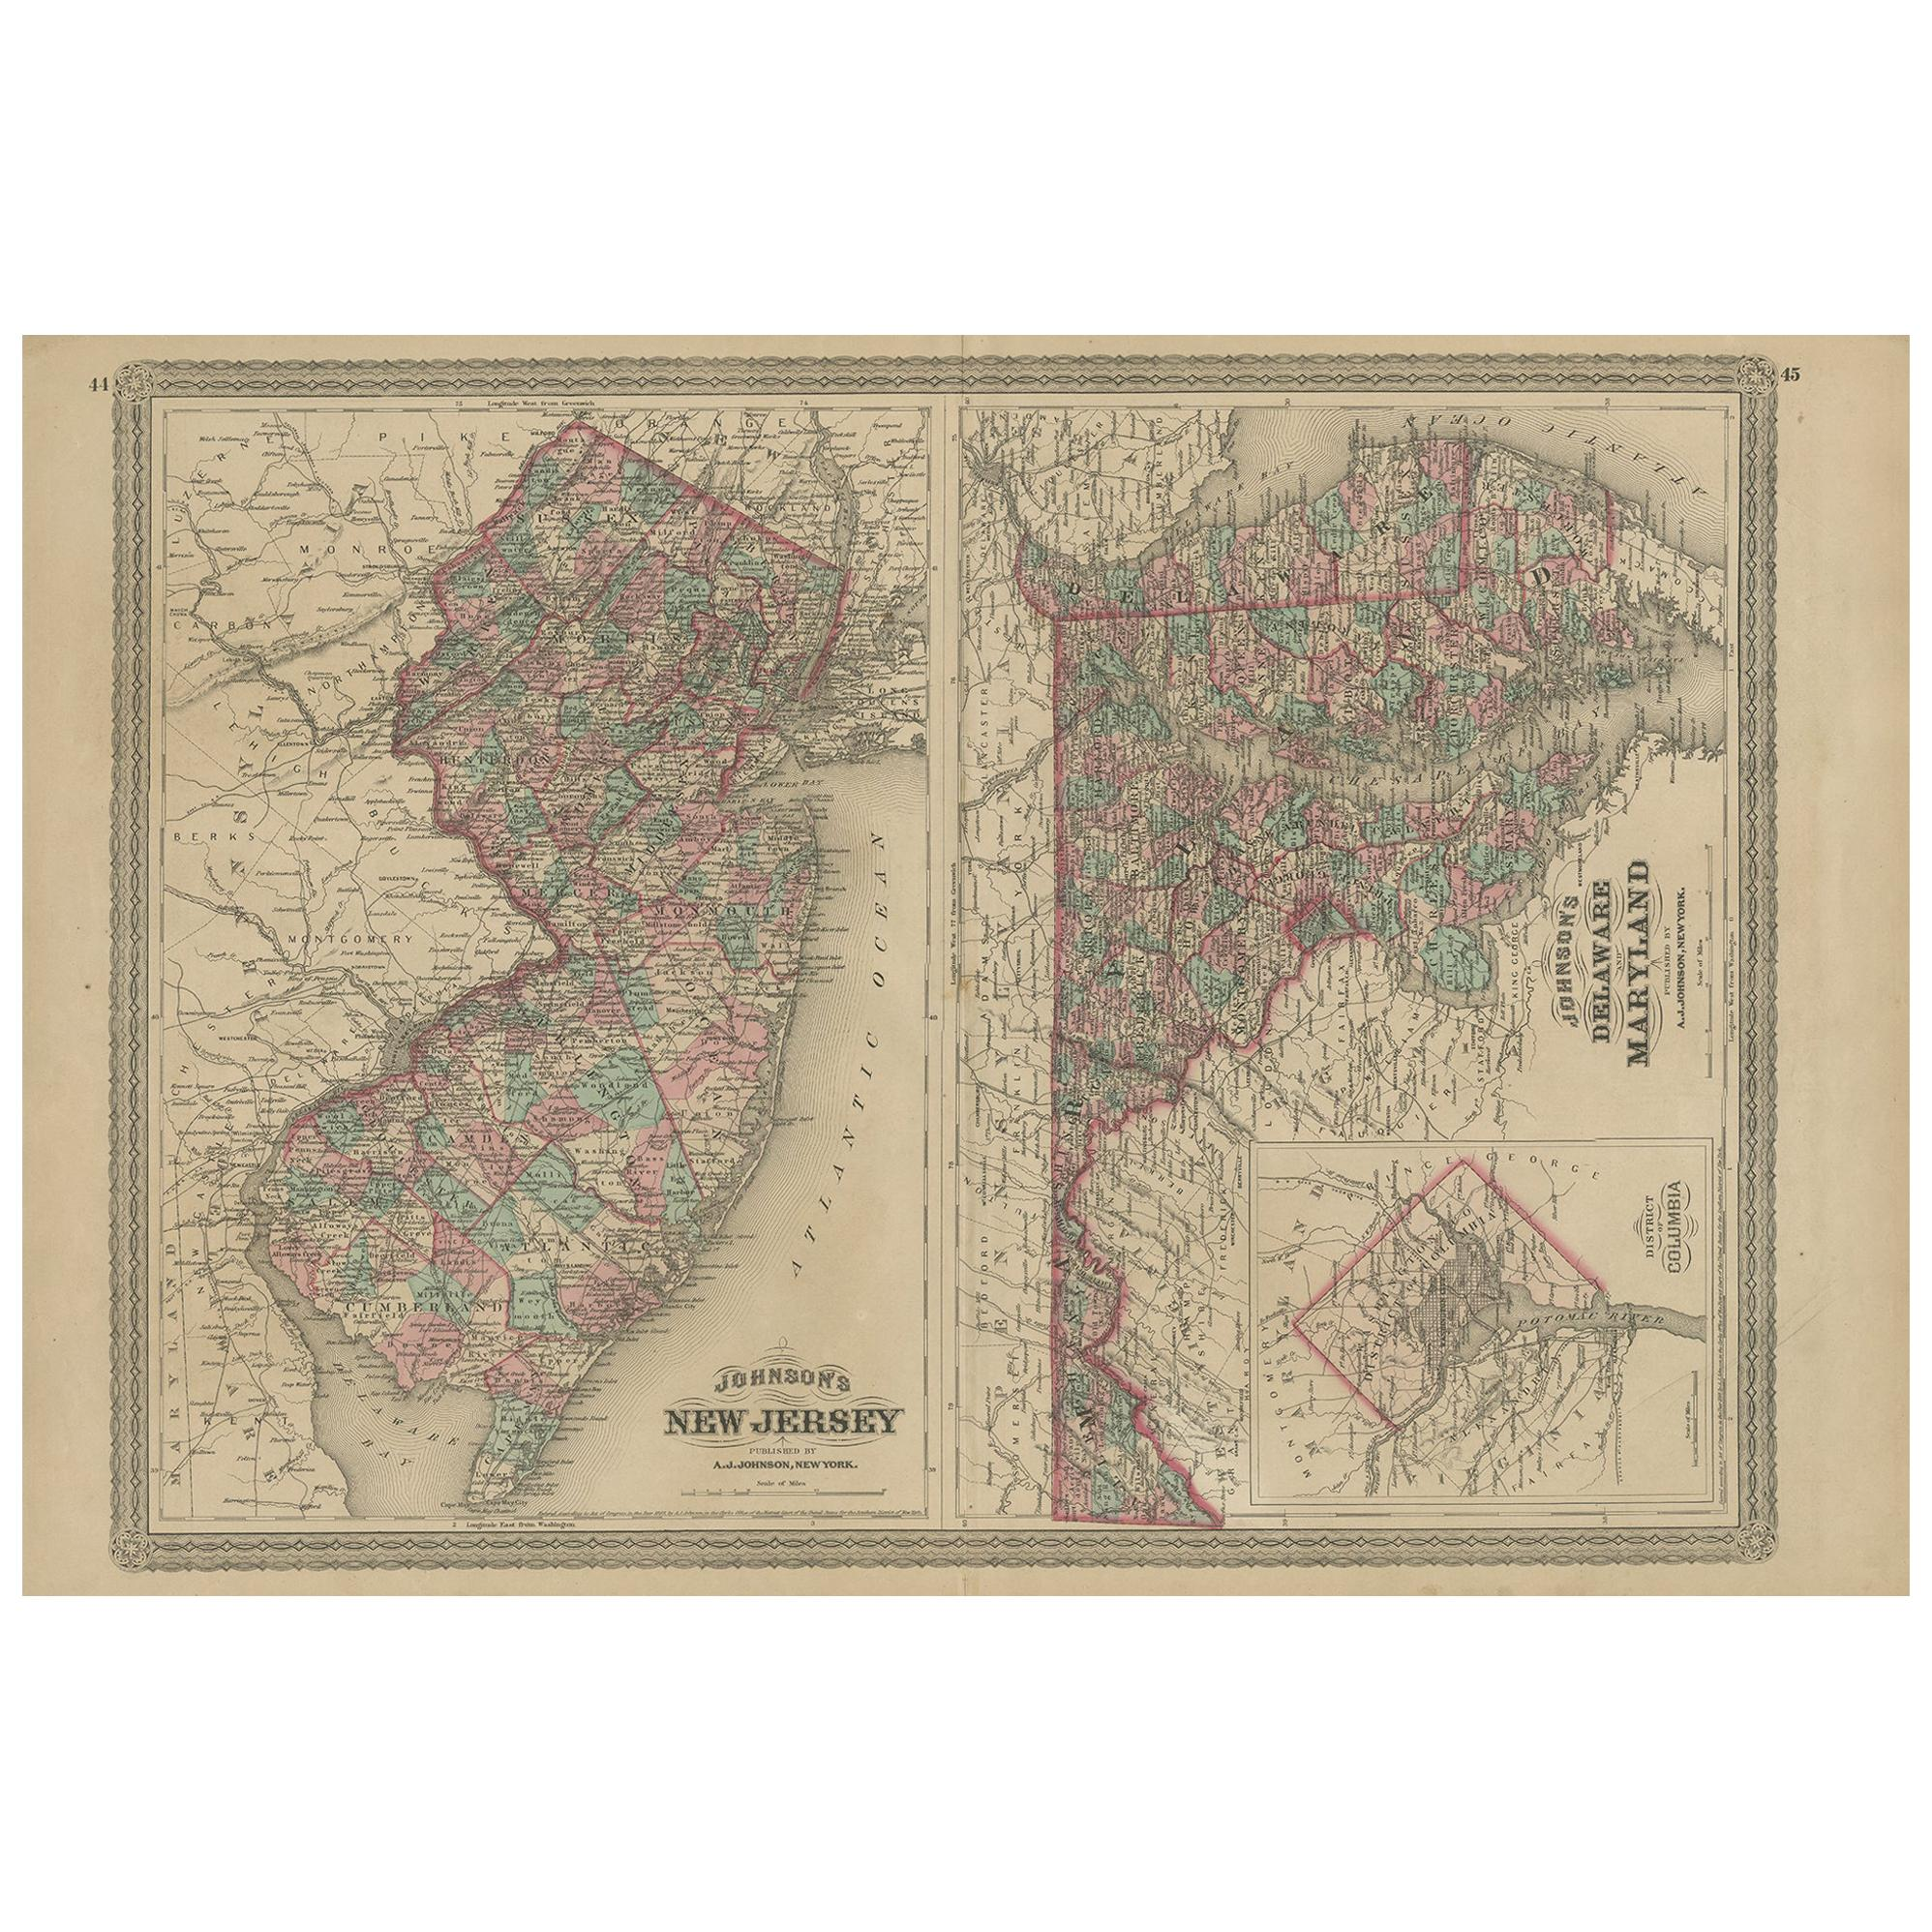 Antique Map of New Jersey, Delaware and Maryland by Johnson, 1872